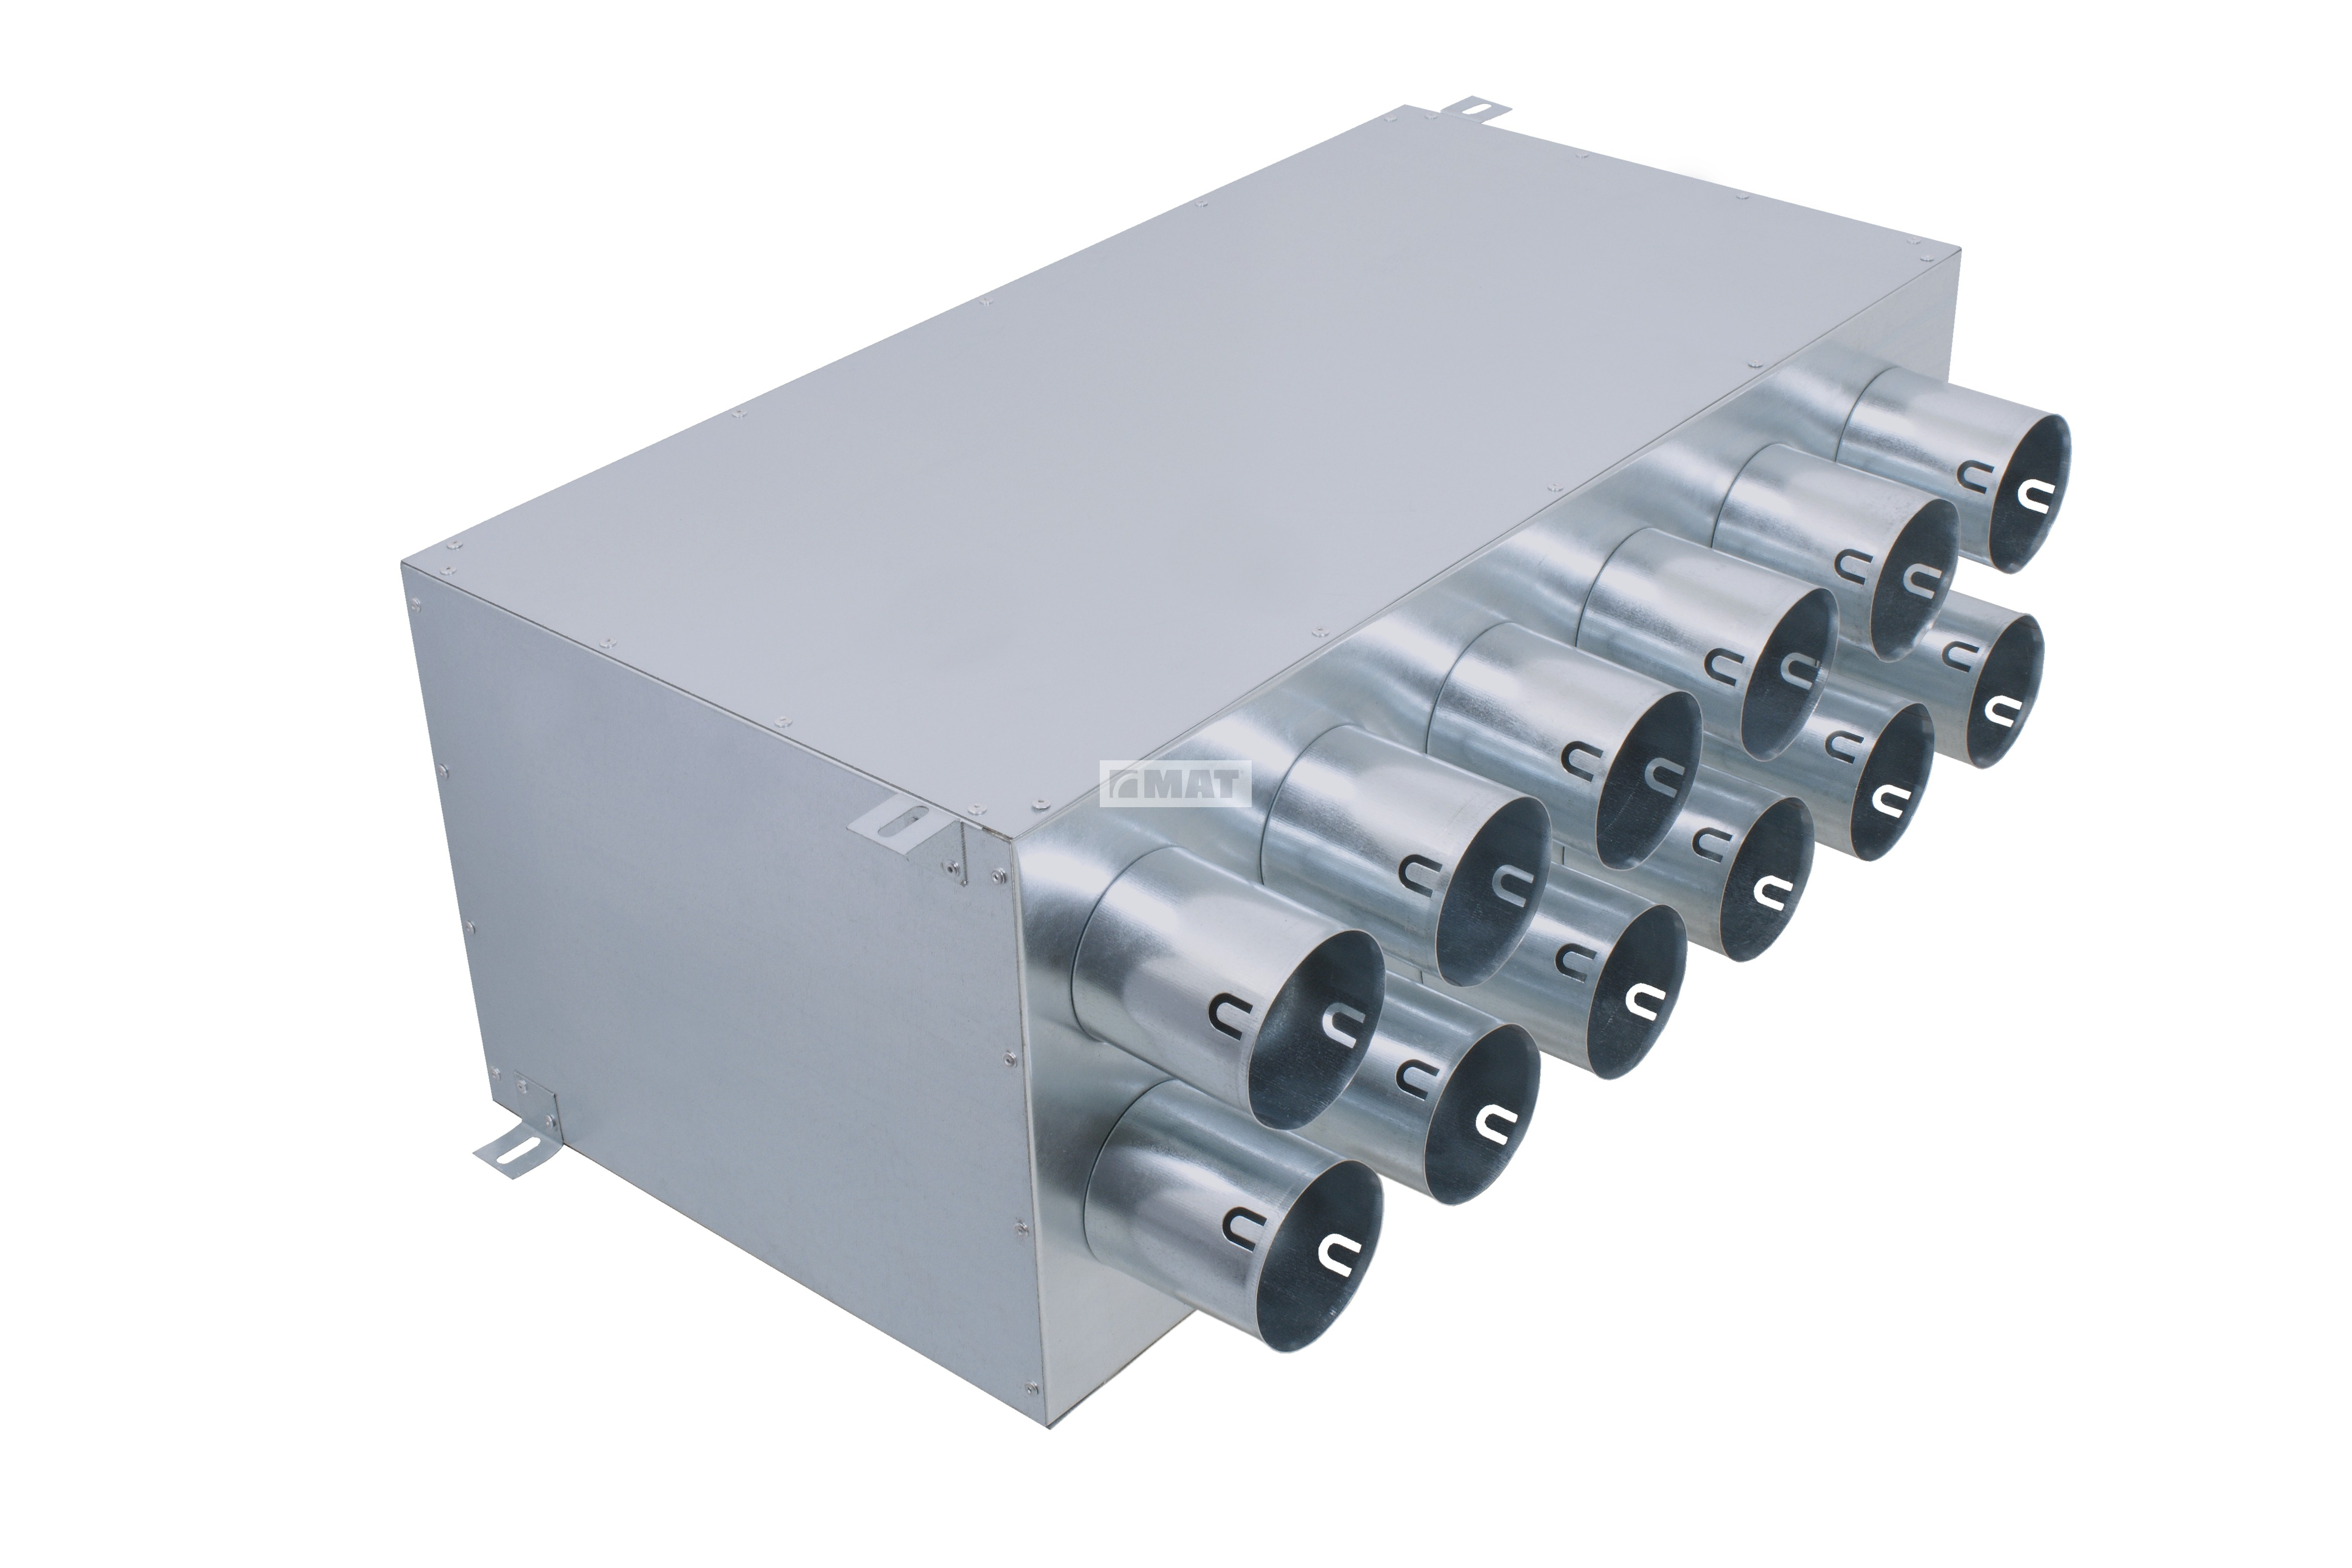 Direct distribution box, 12 outlets / inlets